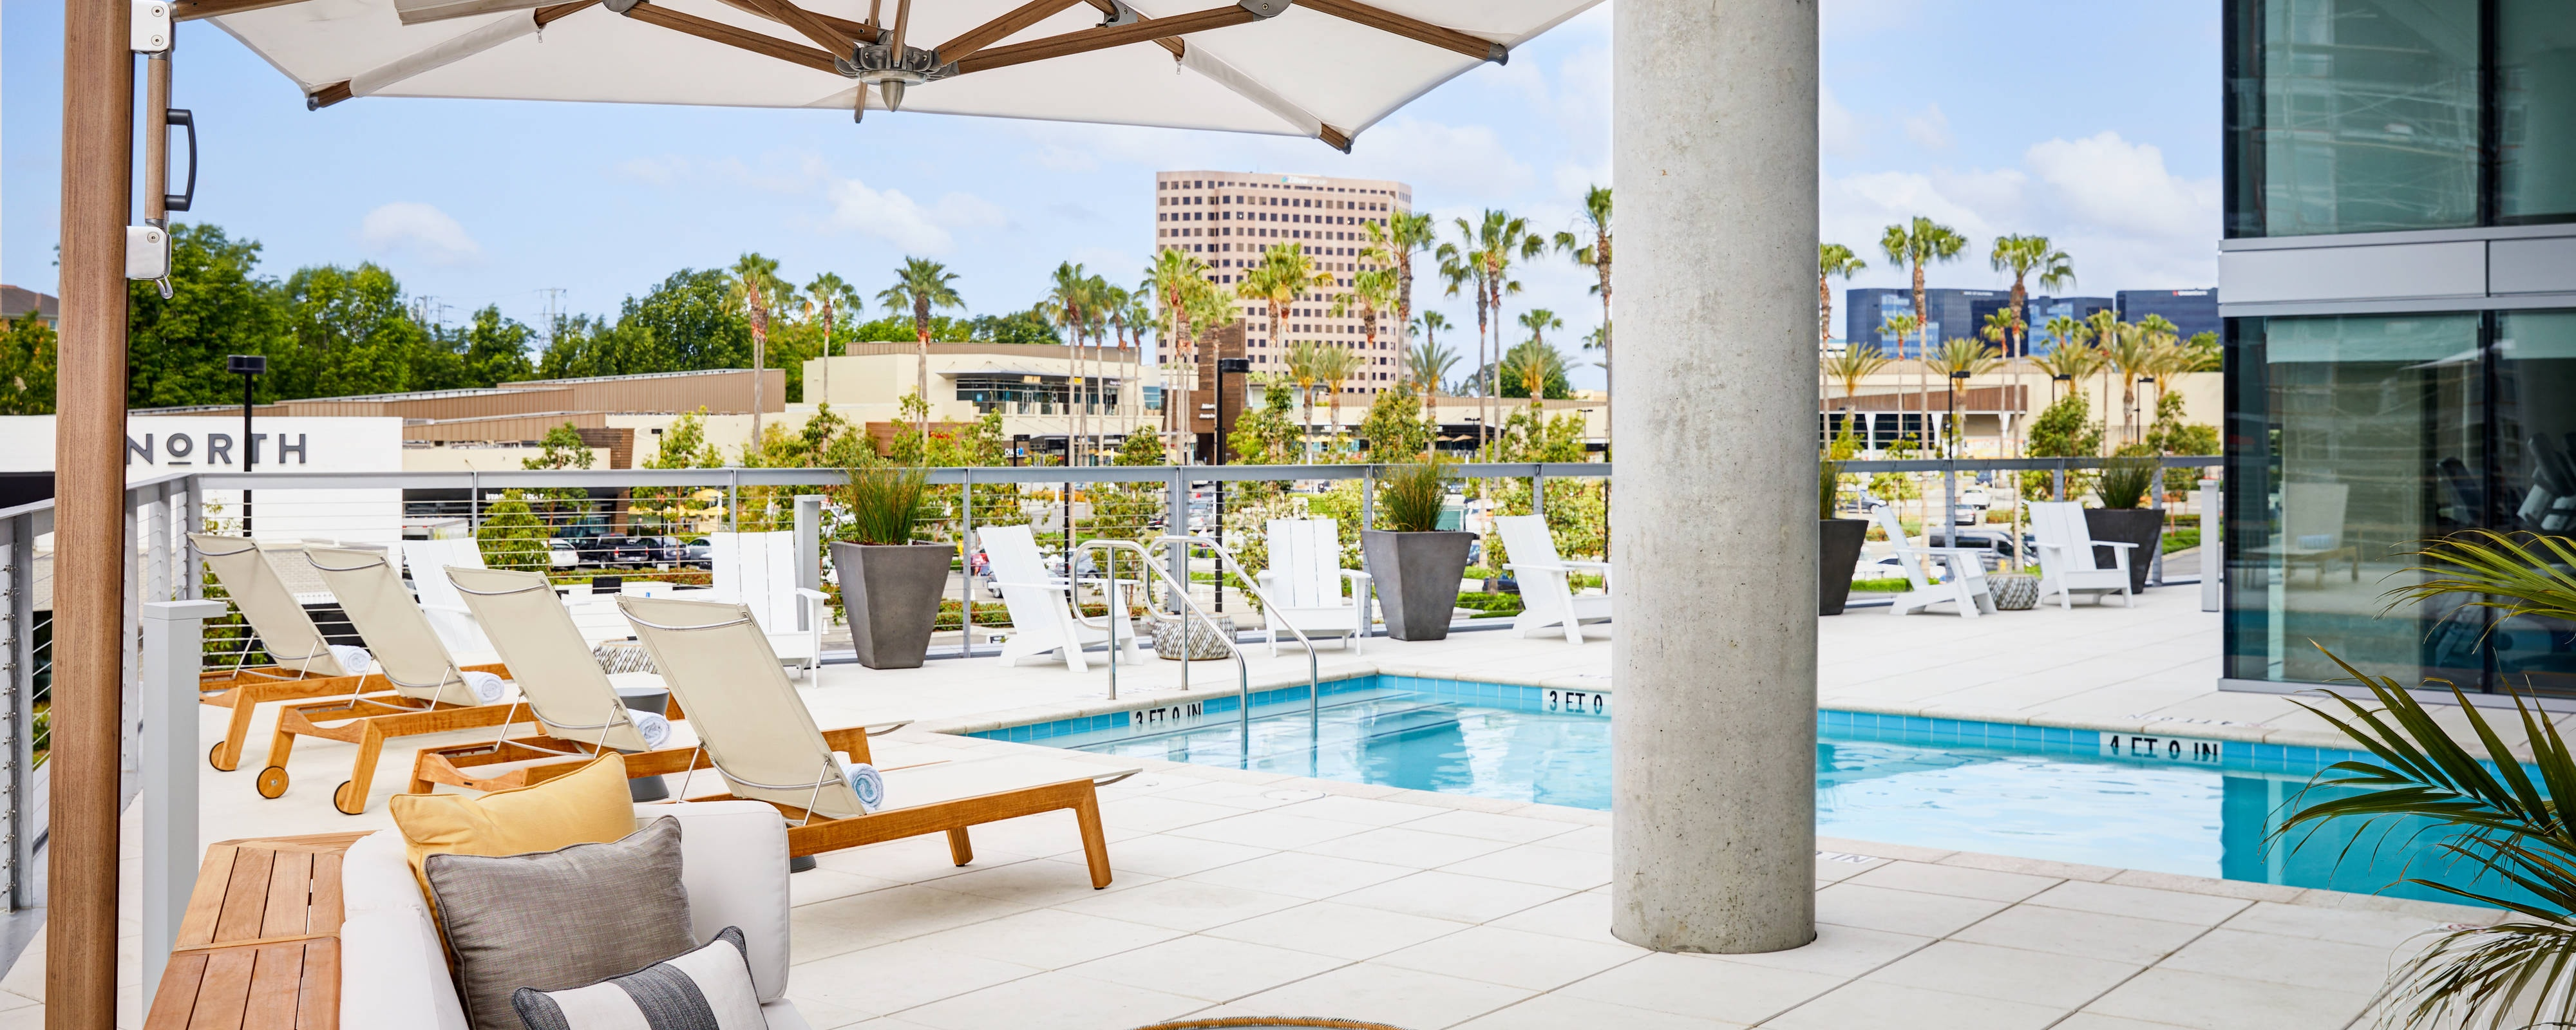 Fitness center and outdoor hotel pools in irvine ca ac - Menzies hotel irvine swimming pool ...